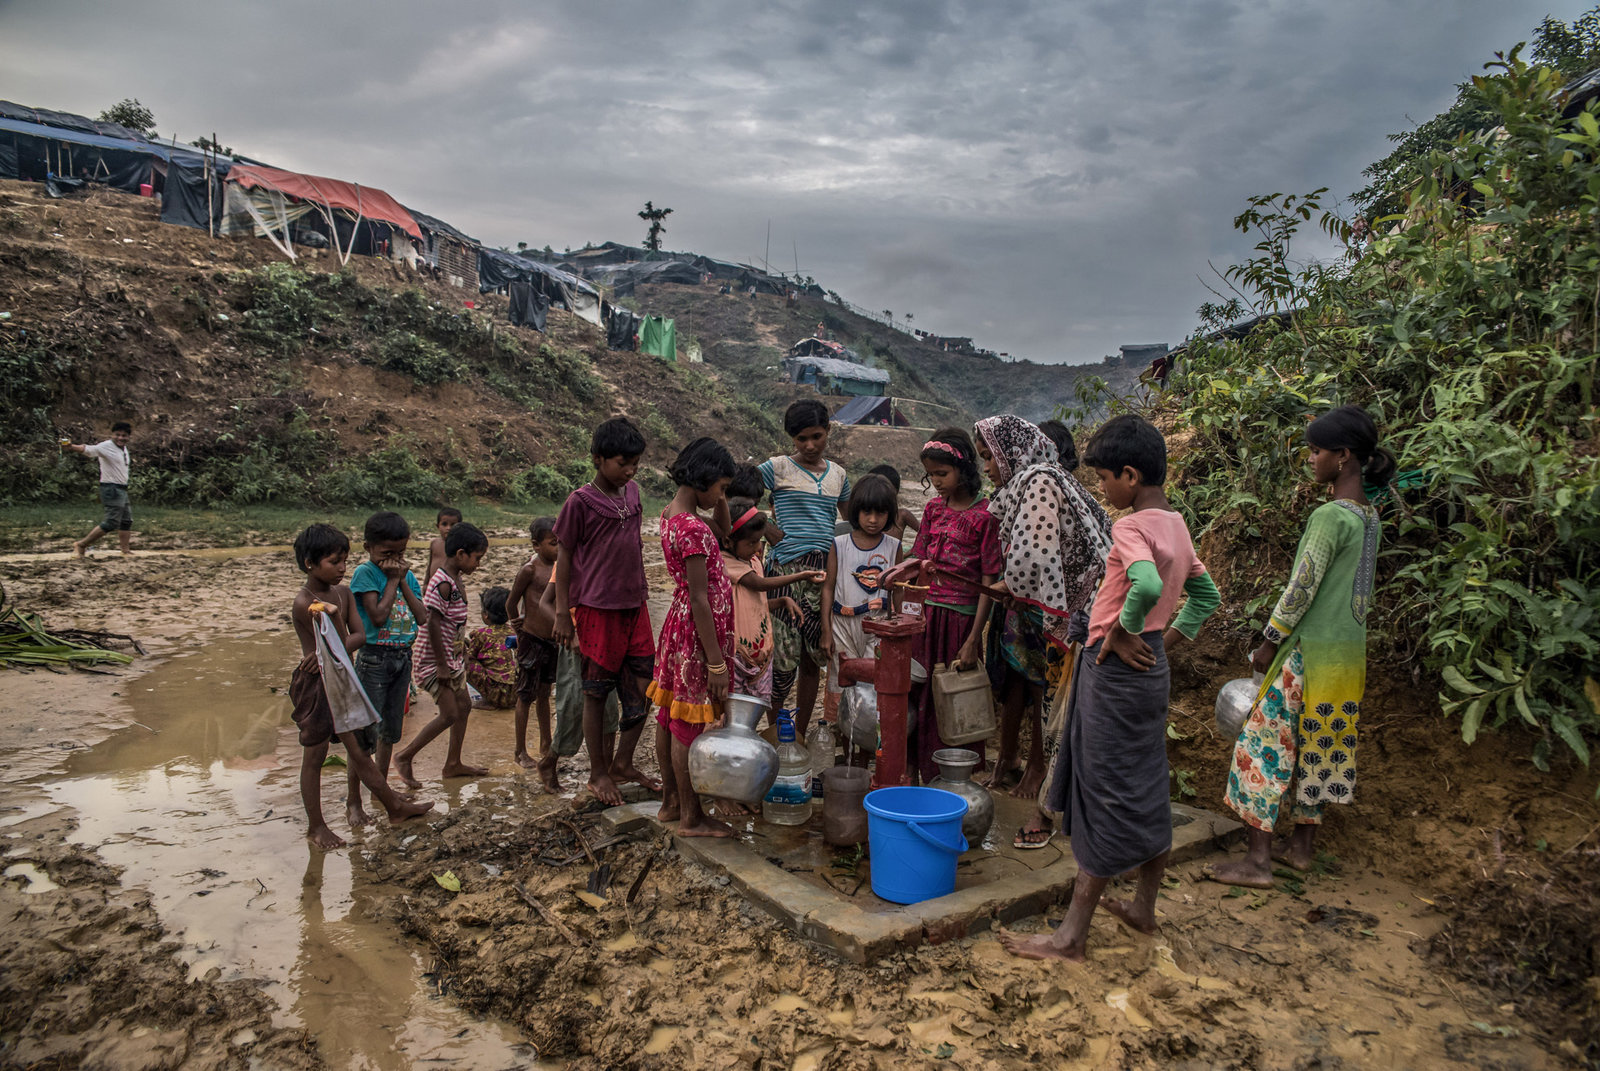 Photo:    Aurélie Marrier d'Unienville    - A group of Rohingya children wait their turn to collect drinking water for their families in Balukhali camp, Bangladesh.